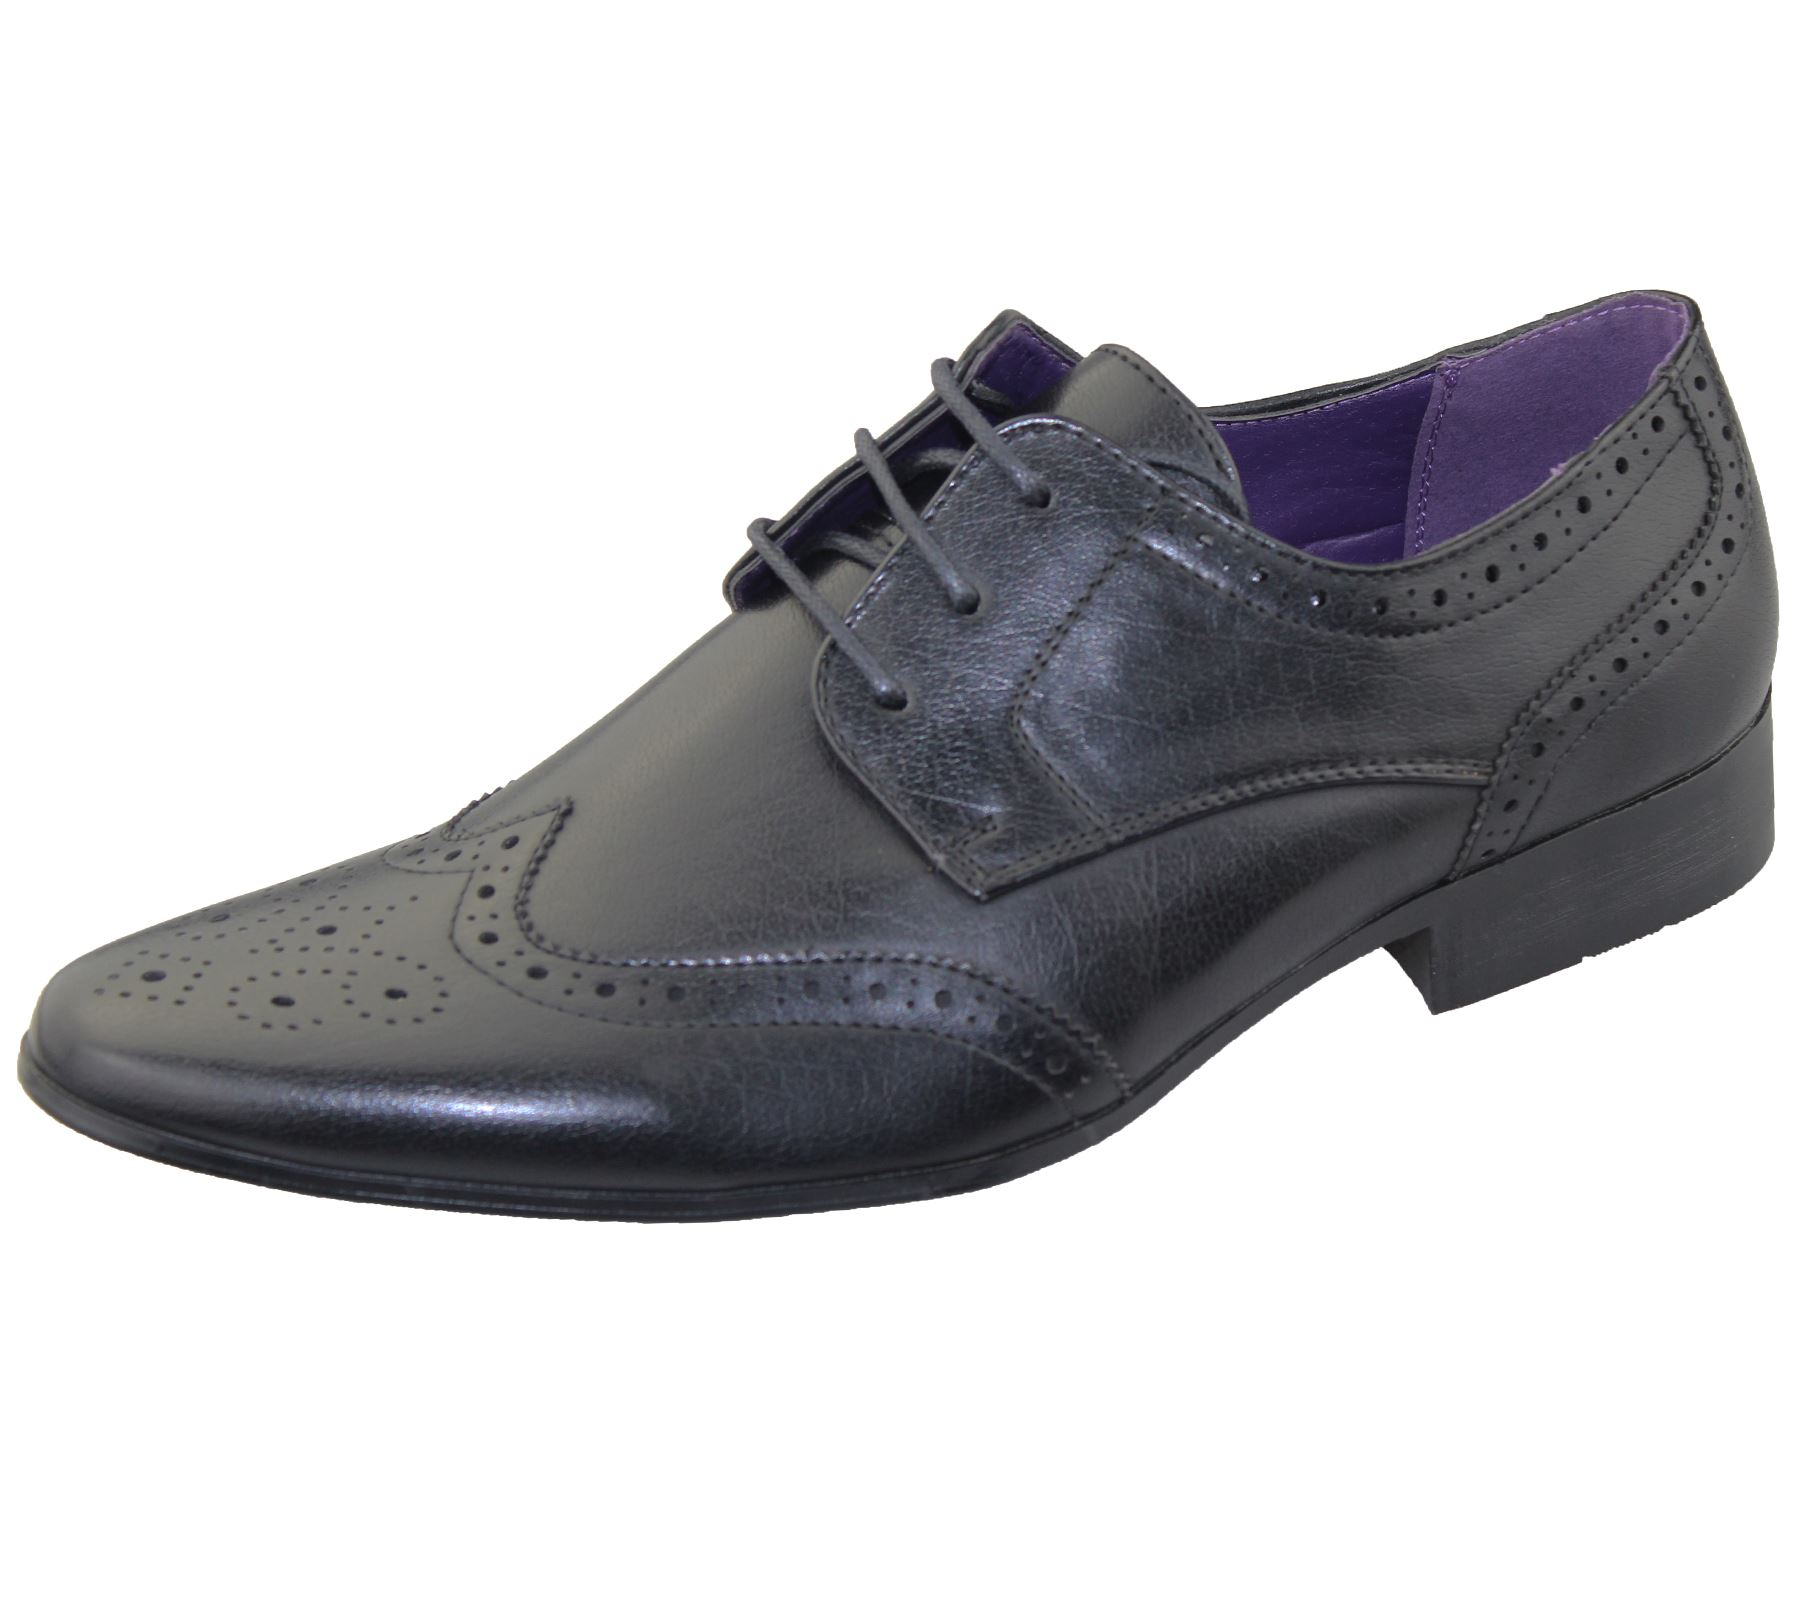 Mens Office Brogues Shoes Wedding Casual Formal Smart Dress Shoes New Size